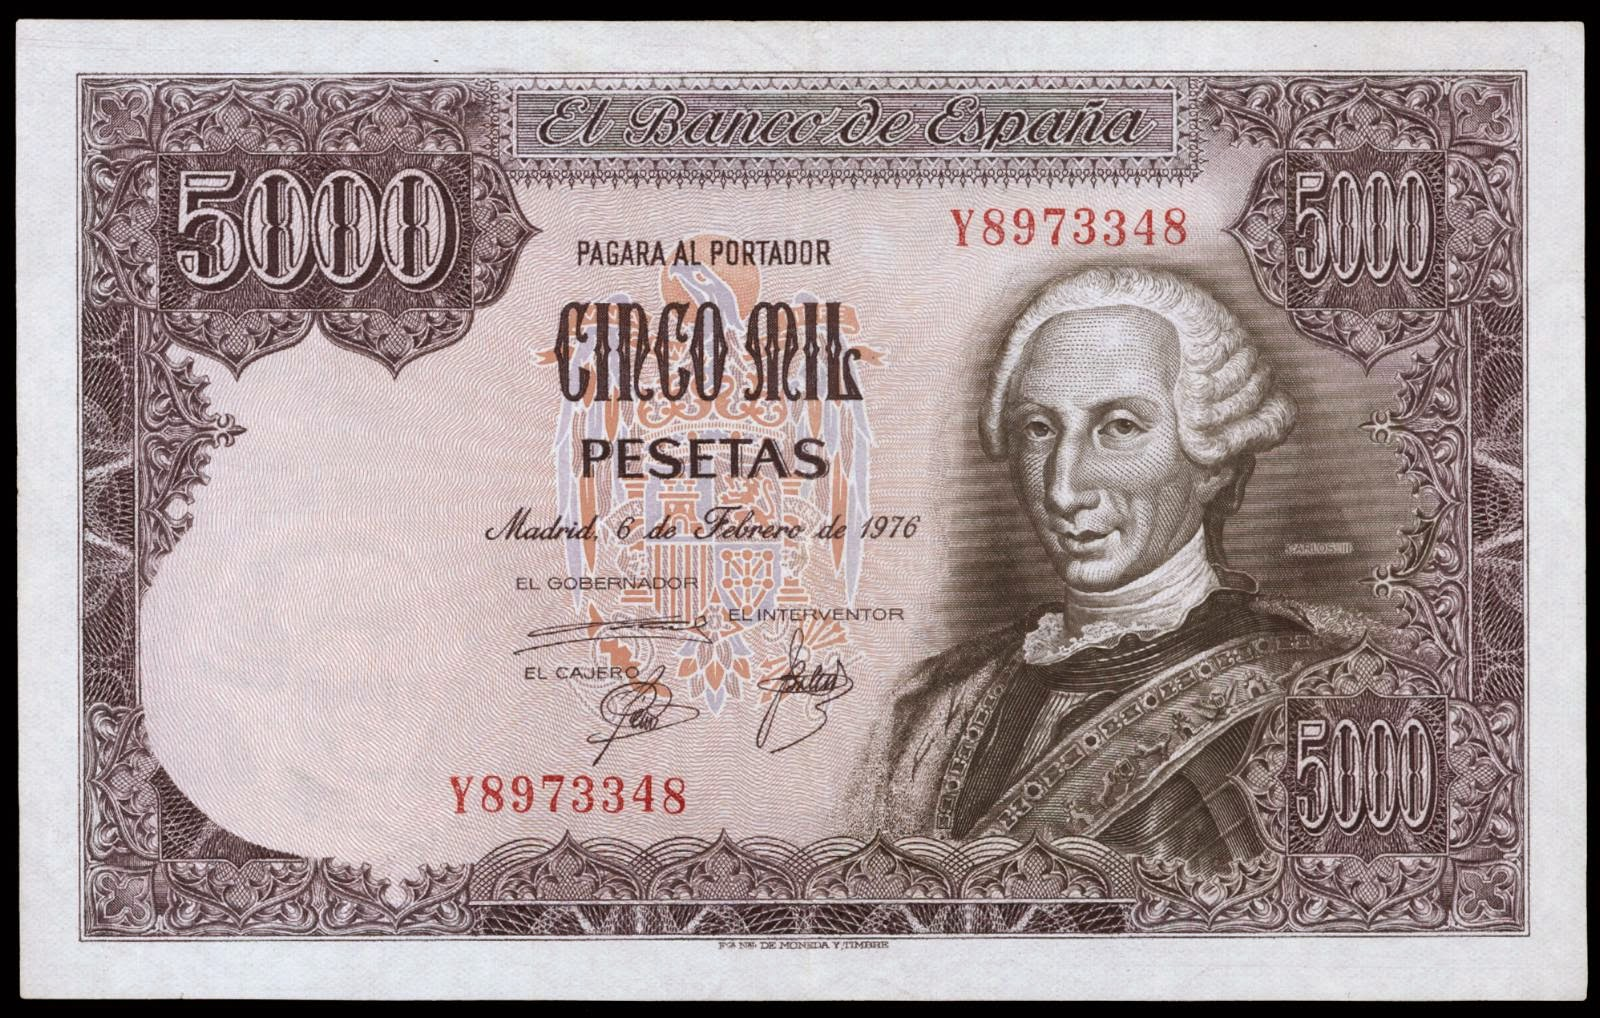 Spain banknotes 5000 Pesetas note 1976 King Carlos III